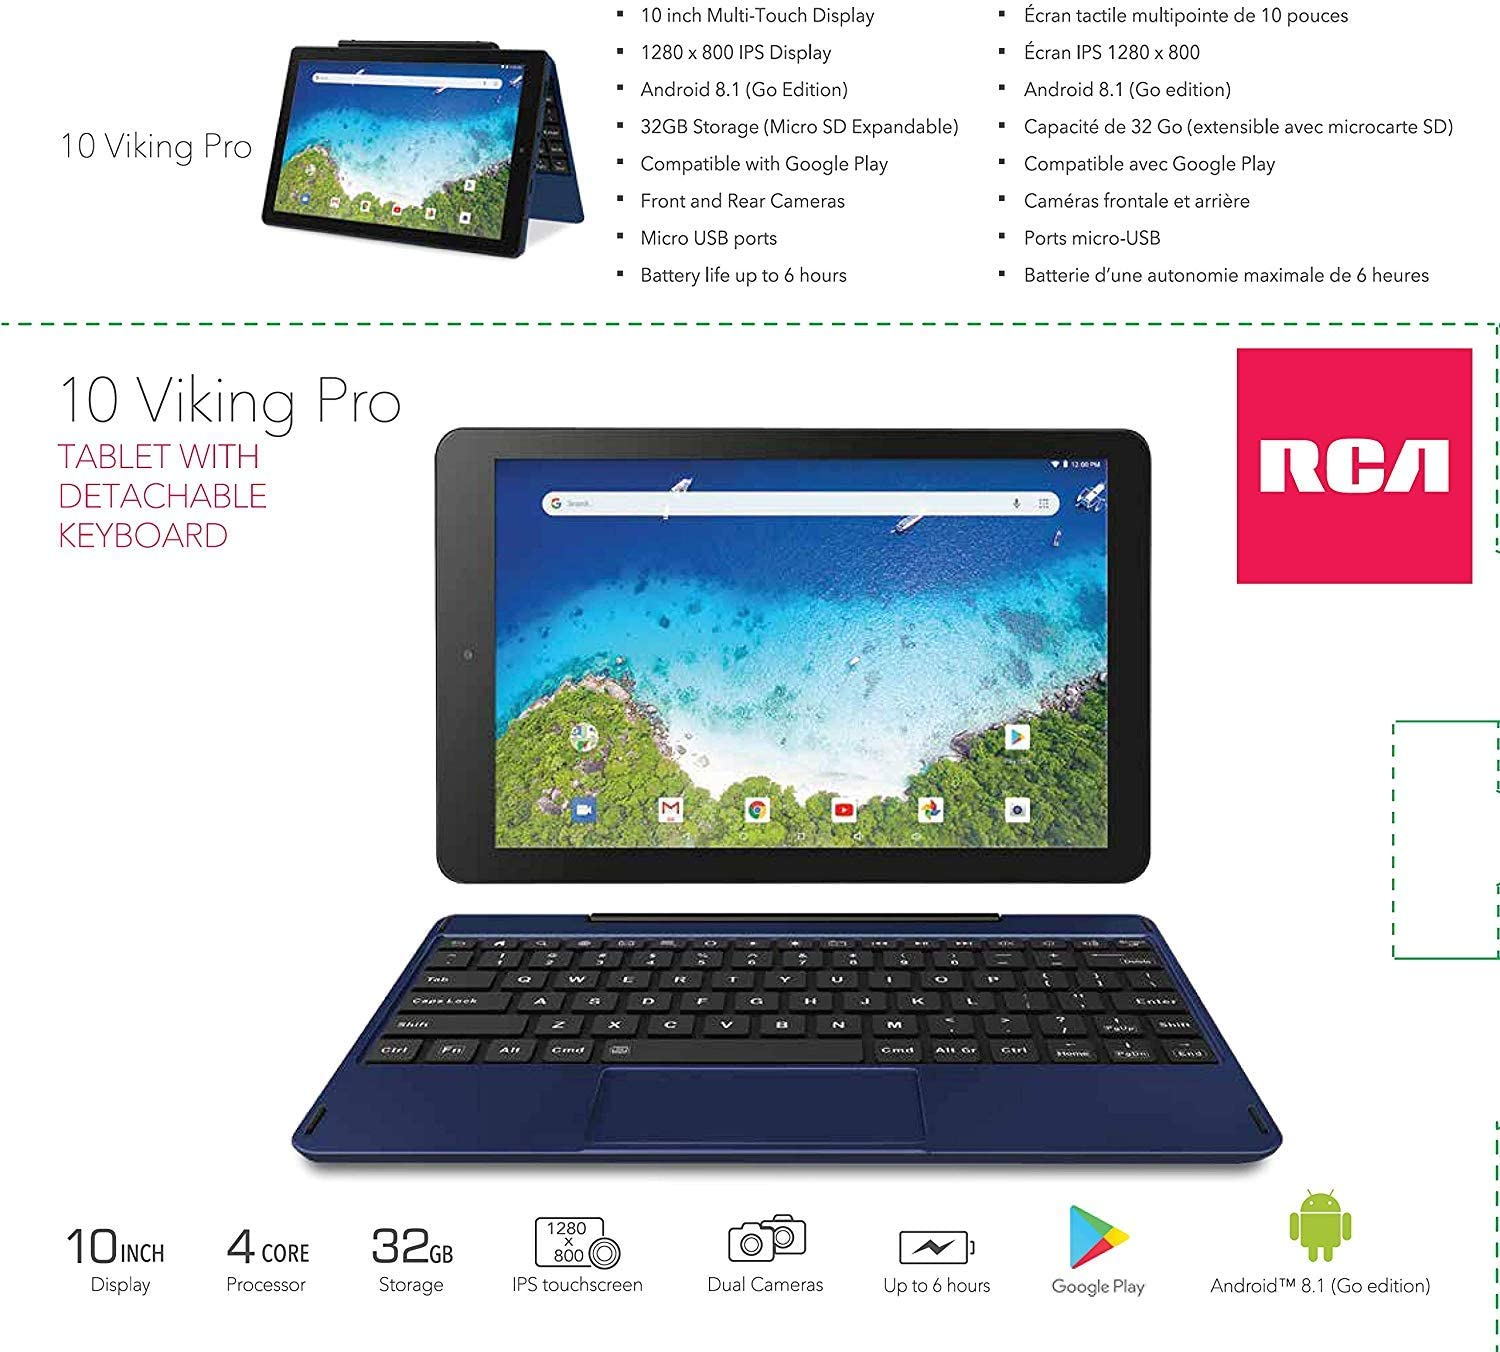 Amazon Com Rca Viking Pro 10 2 In 1 Tablet 32gb Quad Core Blue Laptop Computer With Touchscreen And Detachable Keyboard Google Android 6 0 Computers Accessories